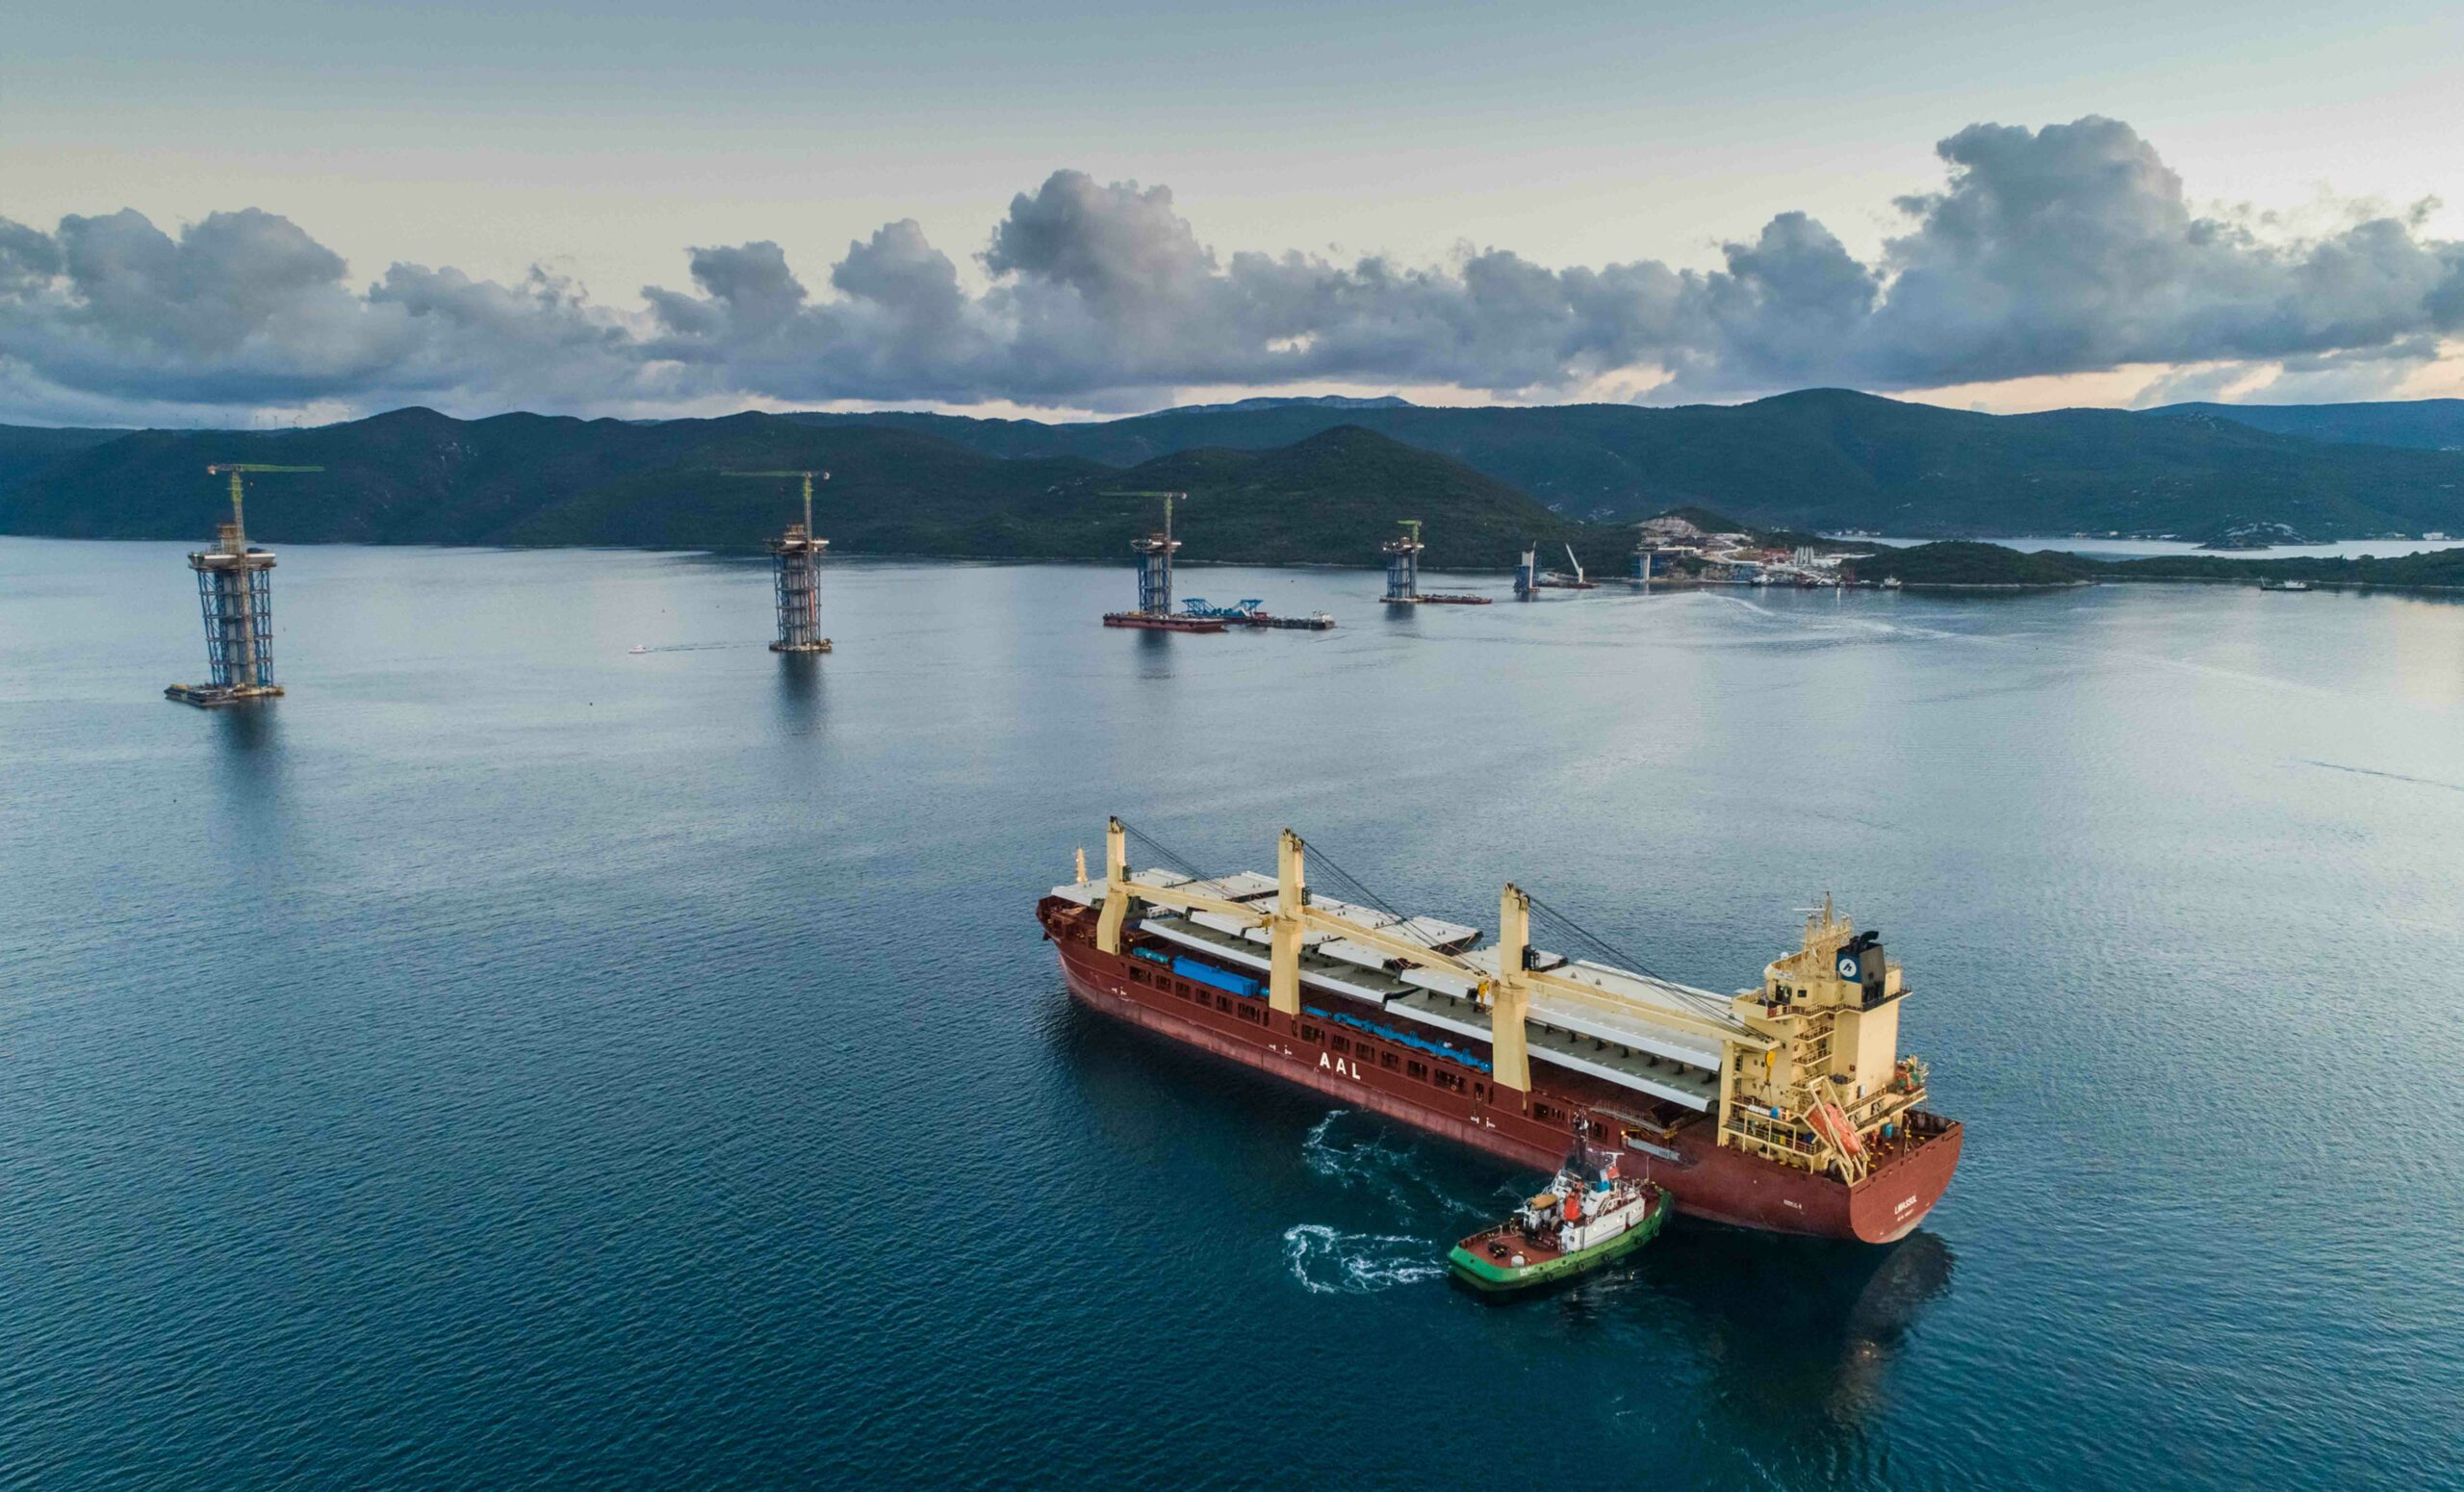 AAL Gibraltar (formerly Pacific Action) and AAL Gladstone join AAL's fleet ABA